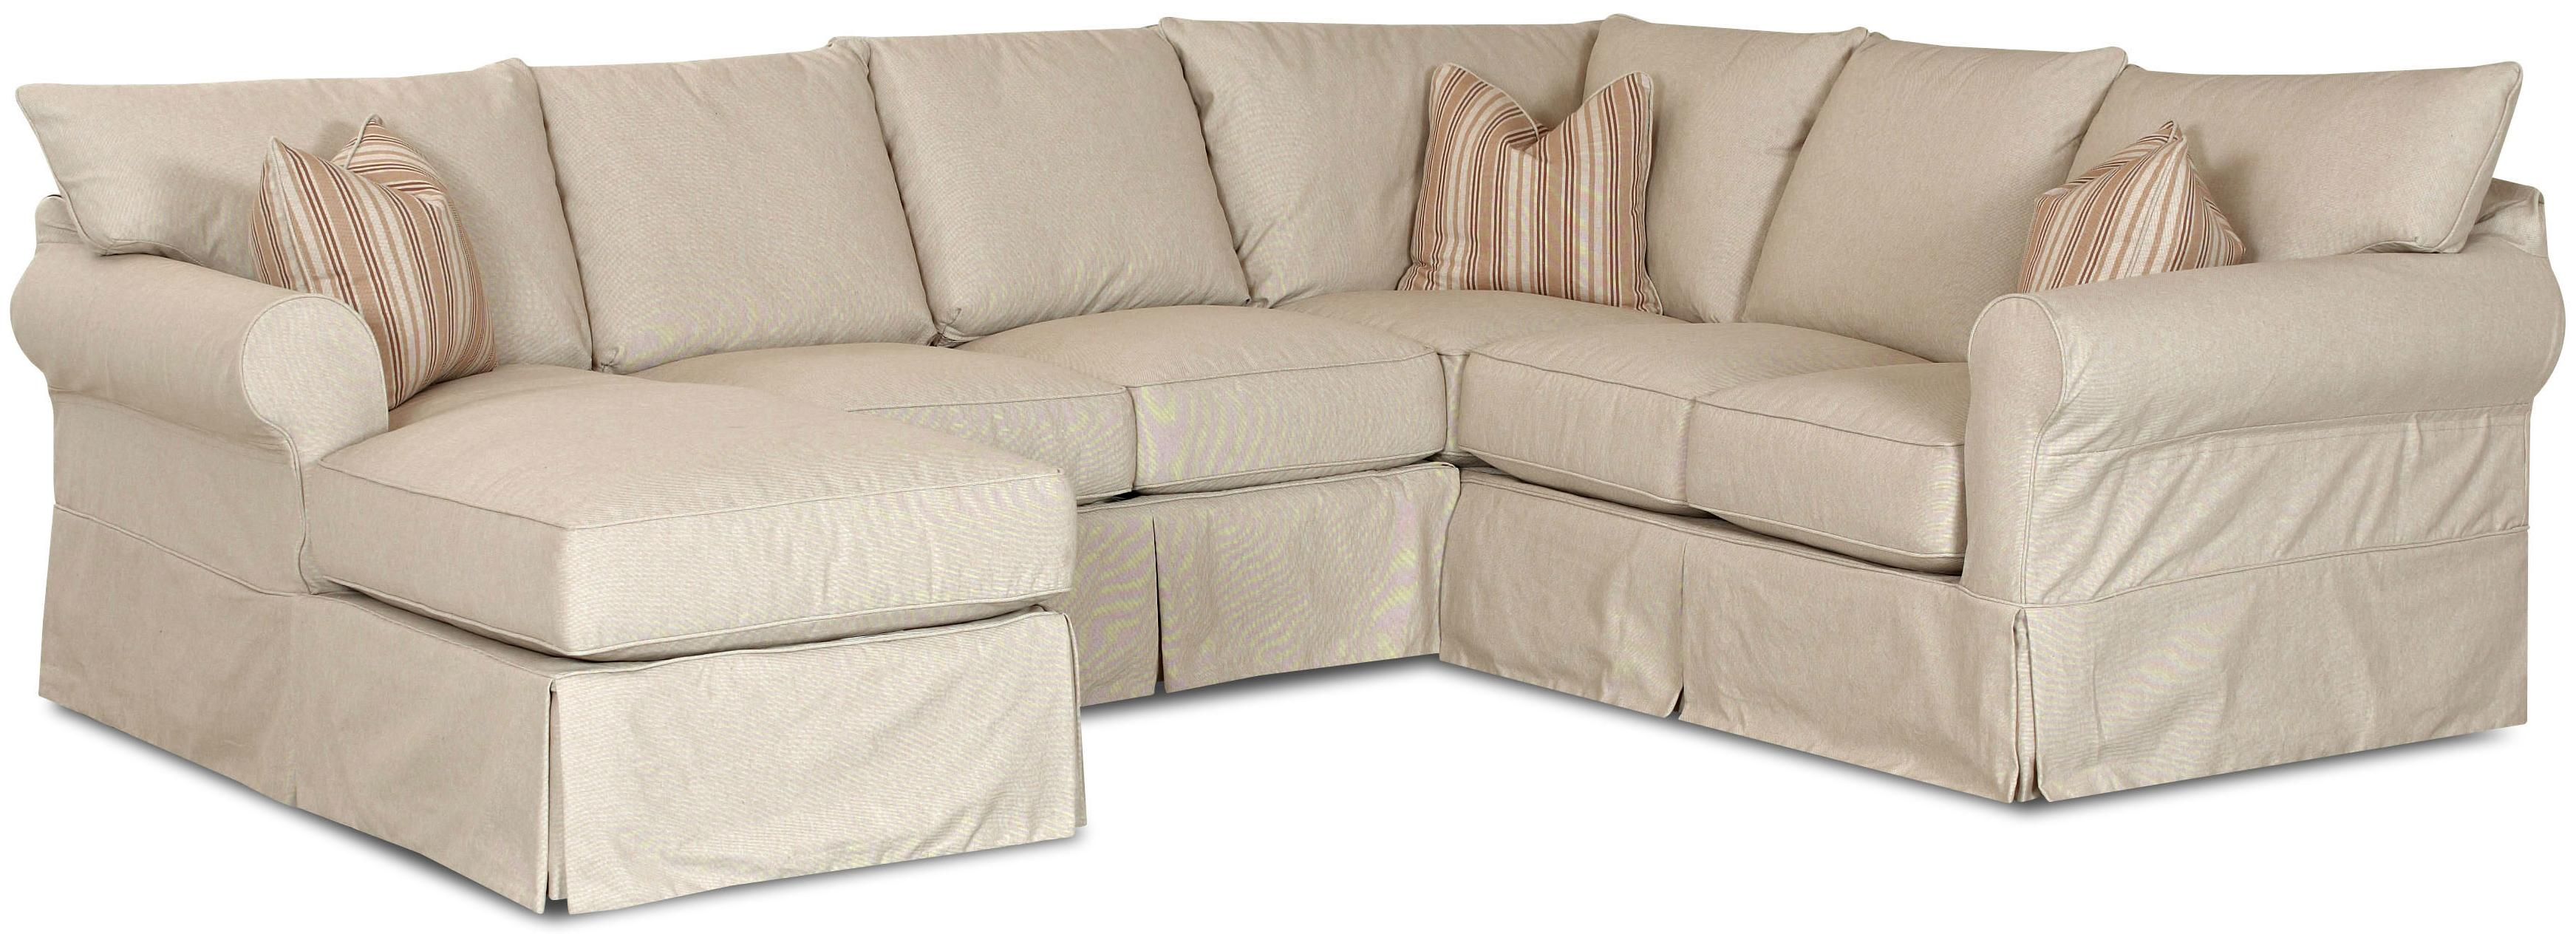 Slip Cover Sectional Sofa with Left Chaise  sc 1 st  Wolf Furniture : sectional slipcovers - Sectionals, Sofas & Couches